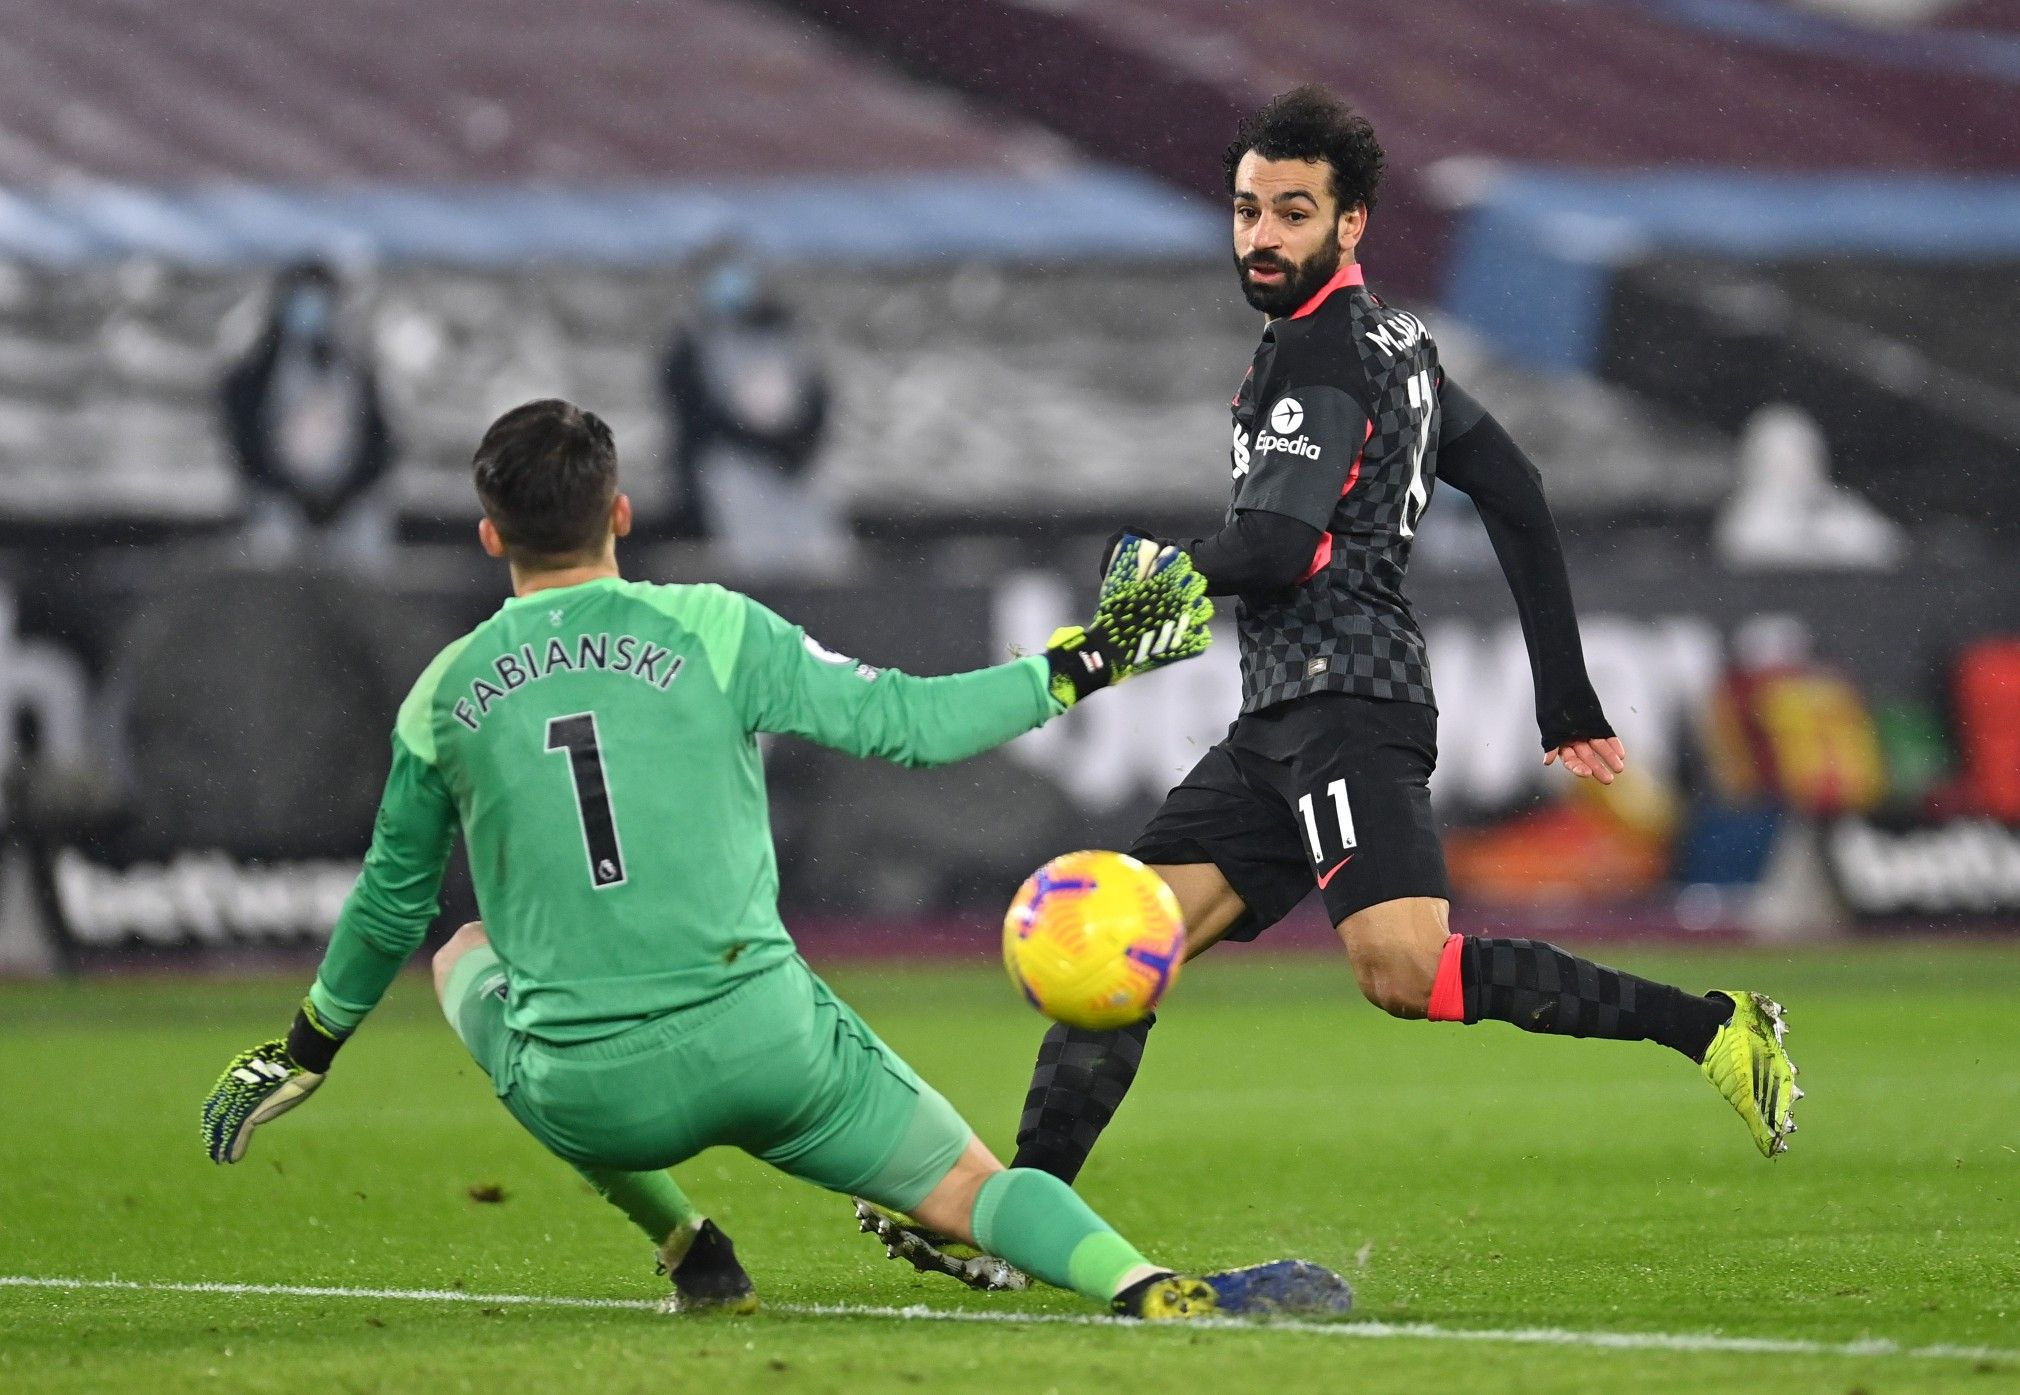 Liverpool Vs West Ham United Highlights 31 January 2021 In 2021 Liverpool Premier League Liverpool Players